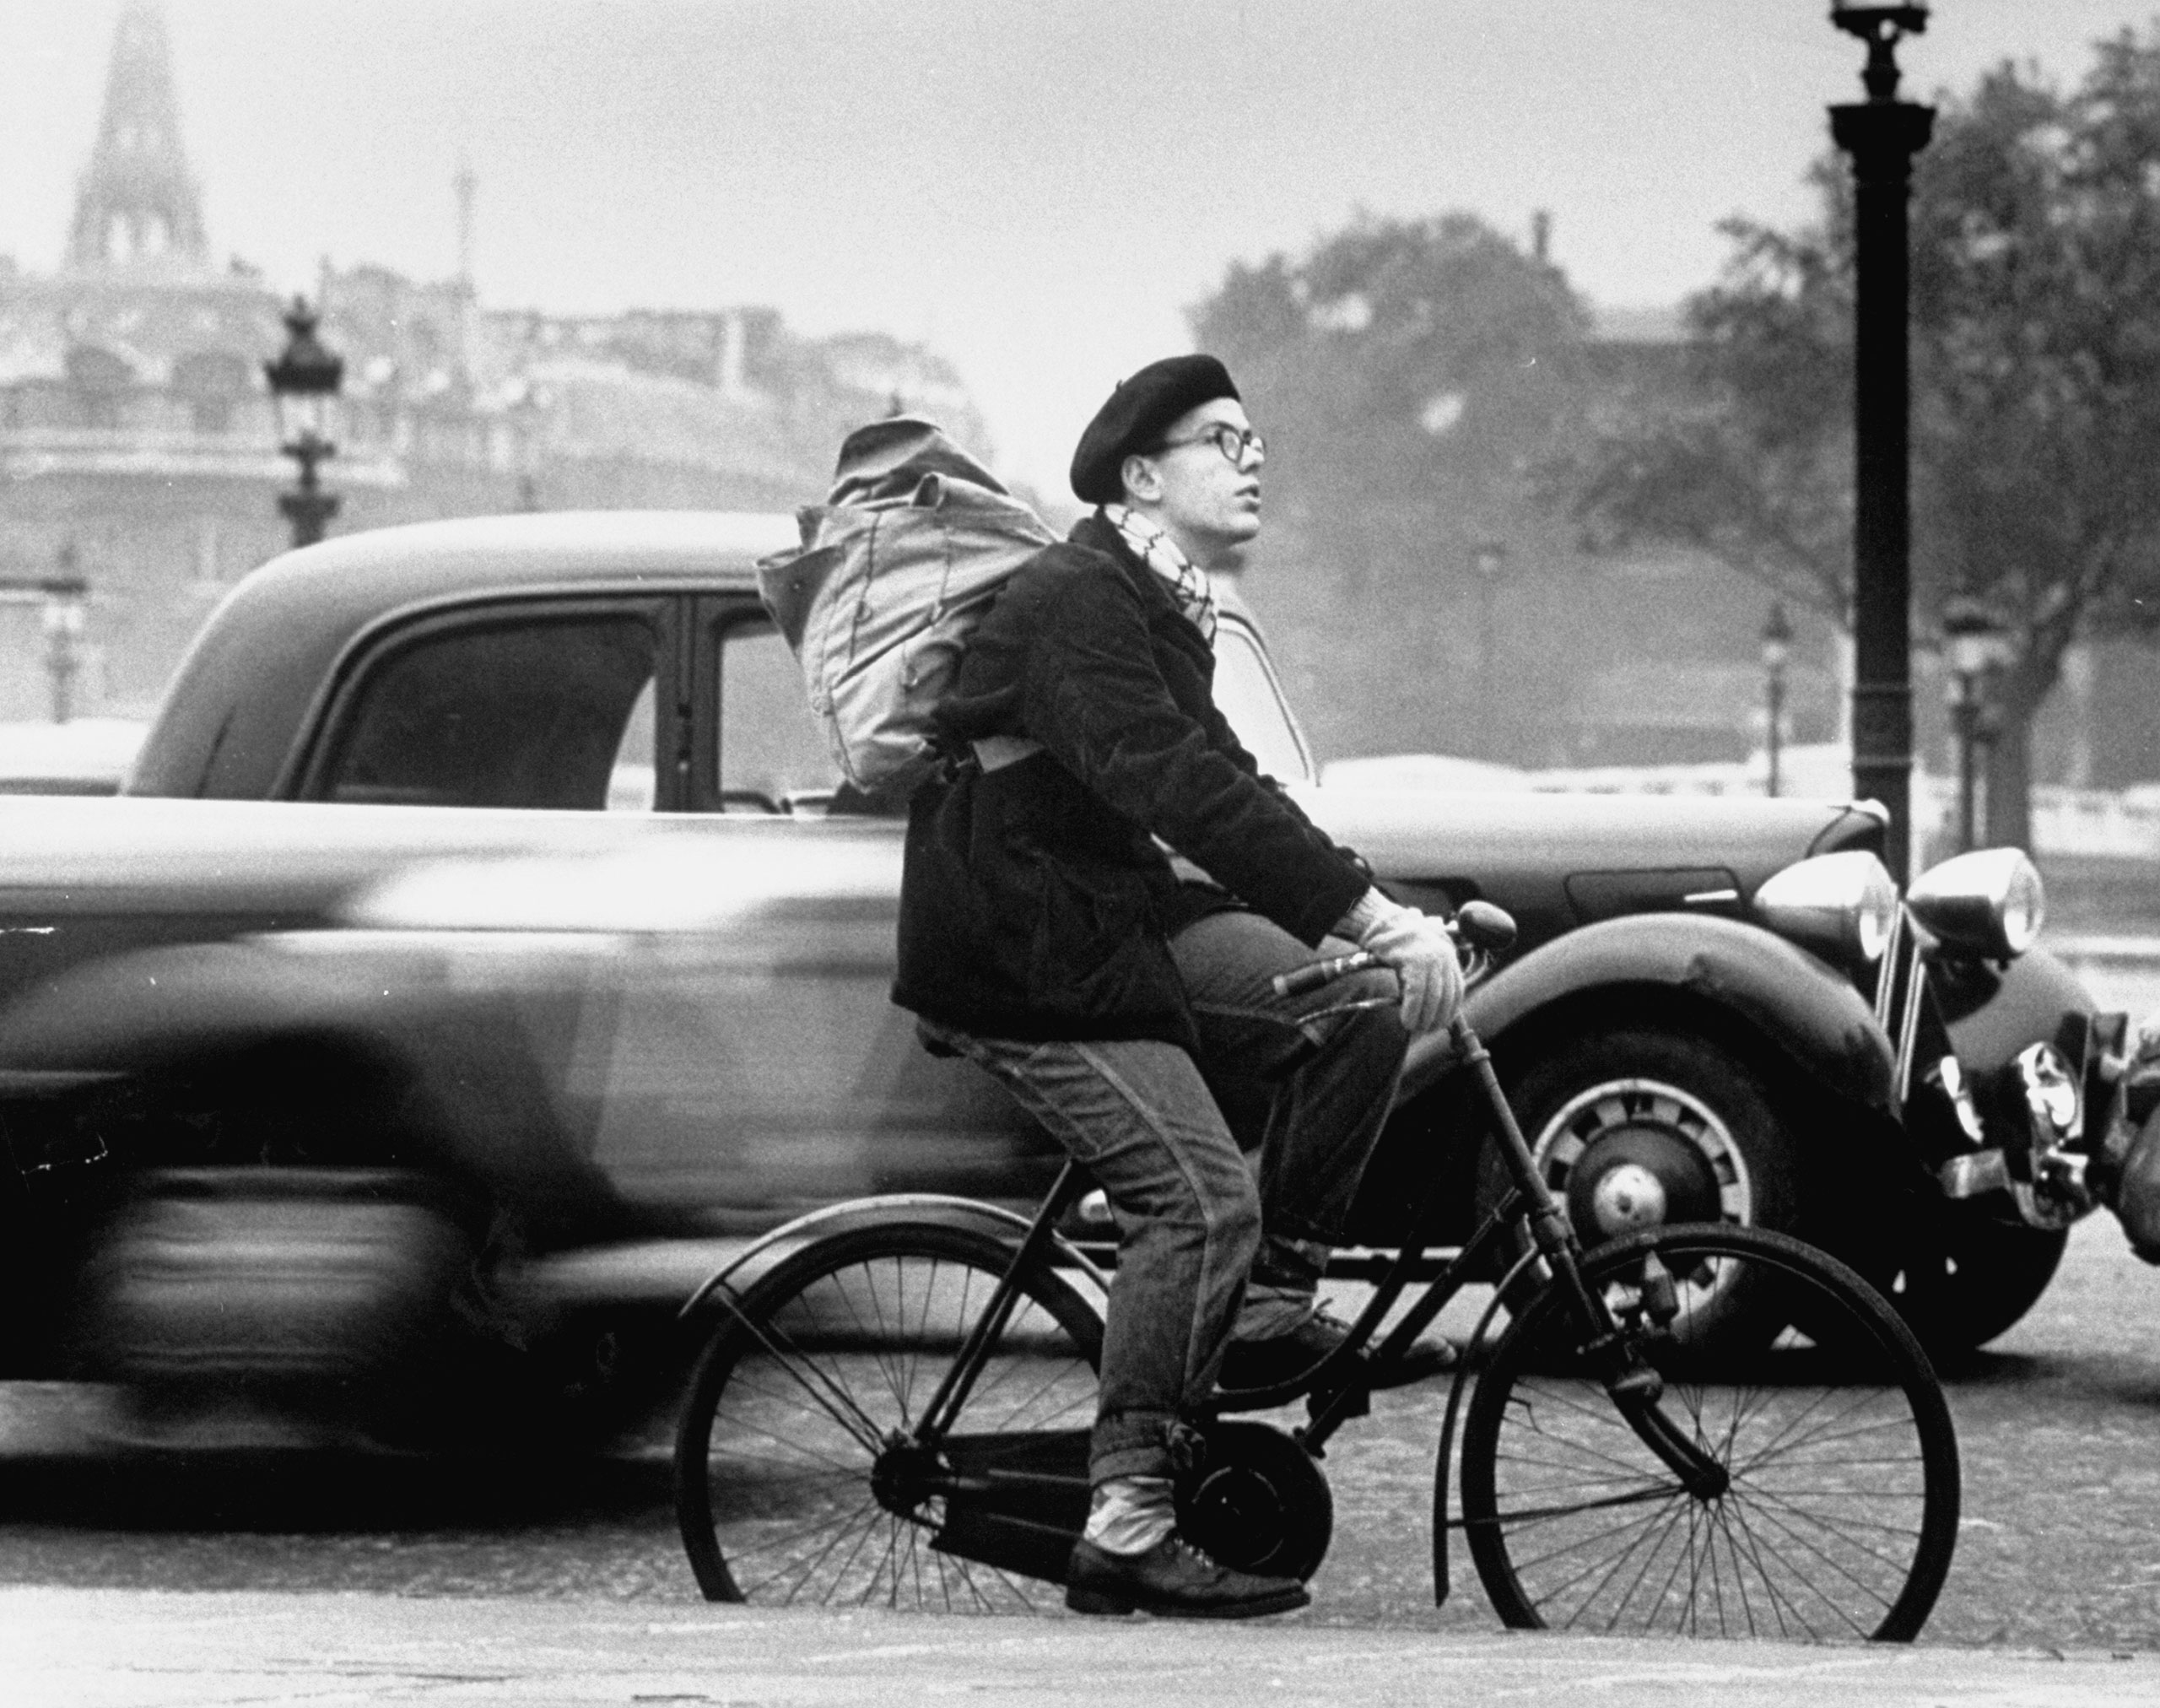 Caption from LIFE. French look gives Ed Perregaux, from Connecticut the reputation of being  a character.  He wears a beret and pack, rides a bike which he bought at the Flea Market.